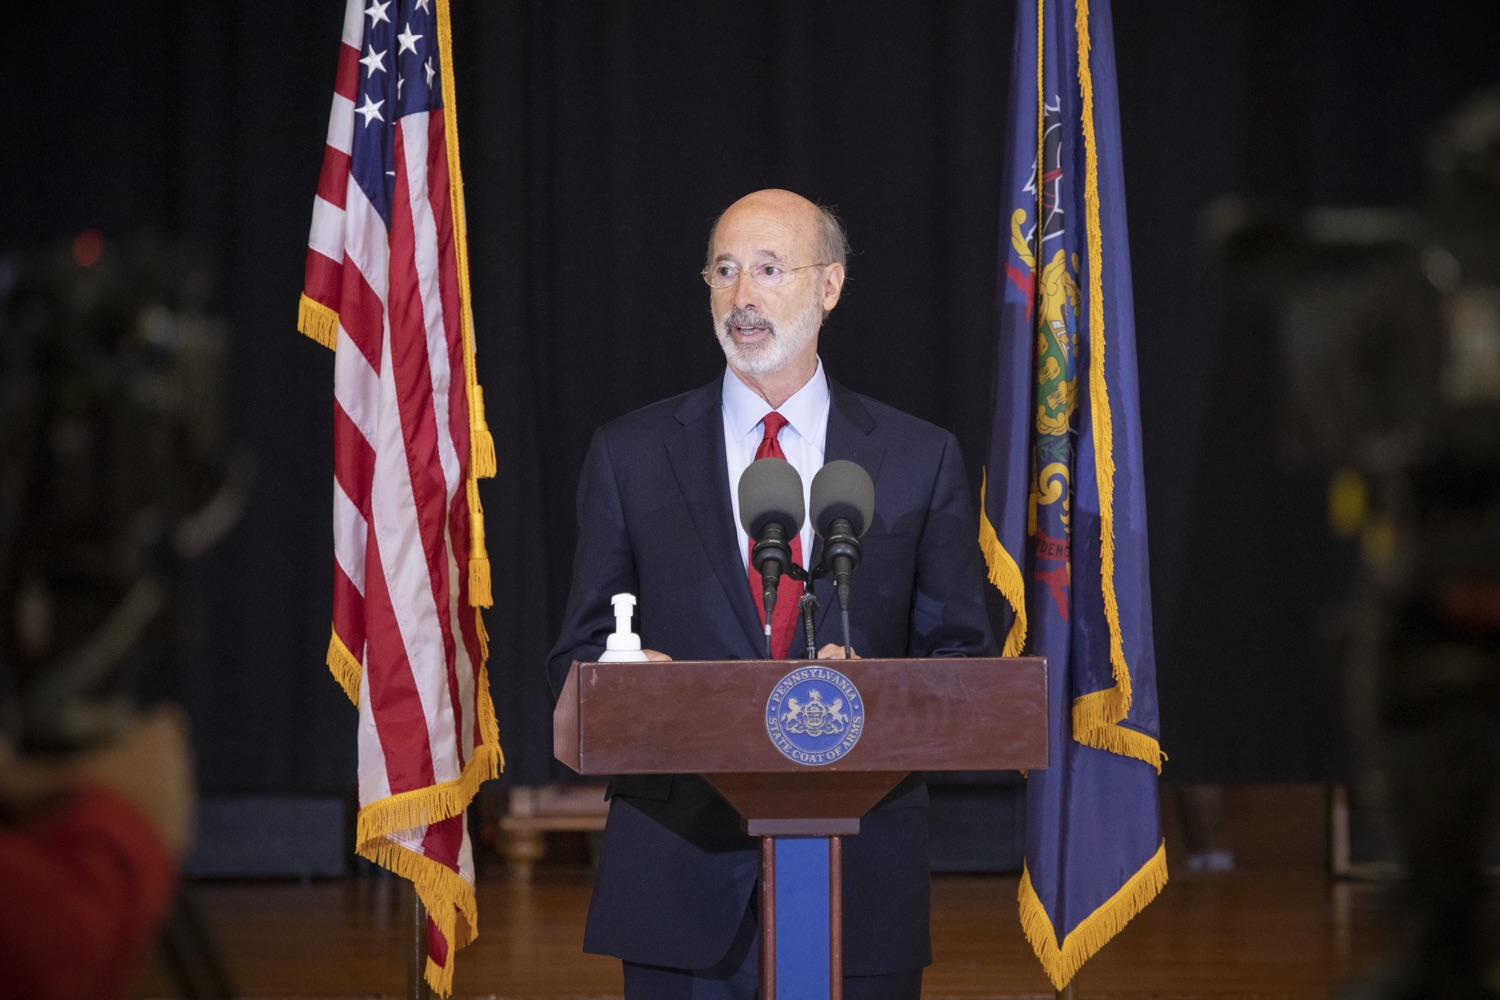 """<a href=""""https://filesource.wostreaming.net/commonwealthofpa/photo/18310_gov_adult_use_cannabis_dz_009.jpg"""" target=""""_blank"""">⇣Download Photo<br></a>Governor Tom Wolf speaks to the press.Governor Tom Wolf visited The Mountain Center in Tobyhanna, Monroe County today to talk about the economic growth potential and restorative justice benefits of legalizing adult-use cannabis, something the state General Assembly has not yet done despite multiple requests from the governor and Lieutenant Governor John Fetterman to take up legislation this fall.  Tobyhanna, PA  October 13, 2020"""